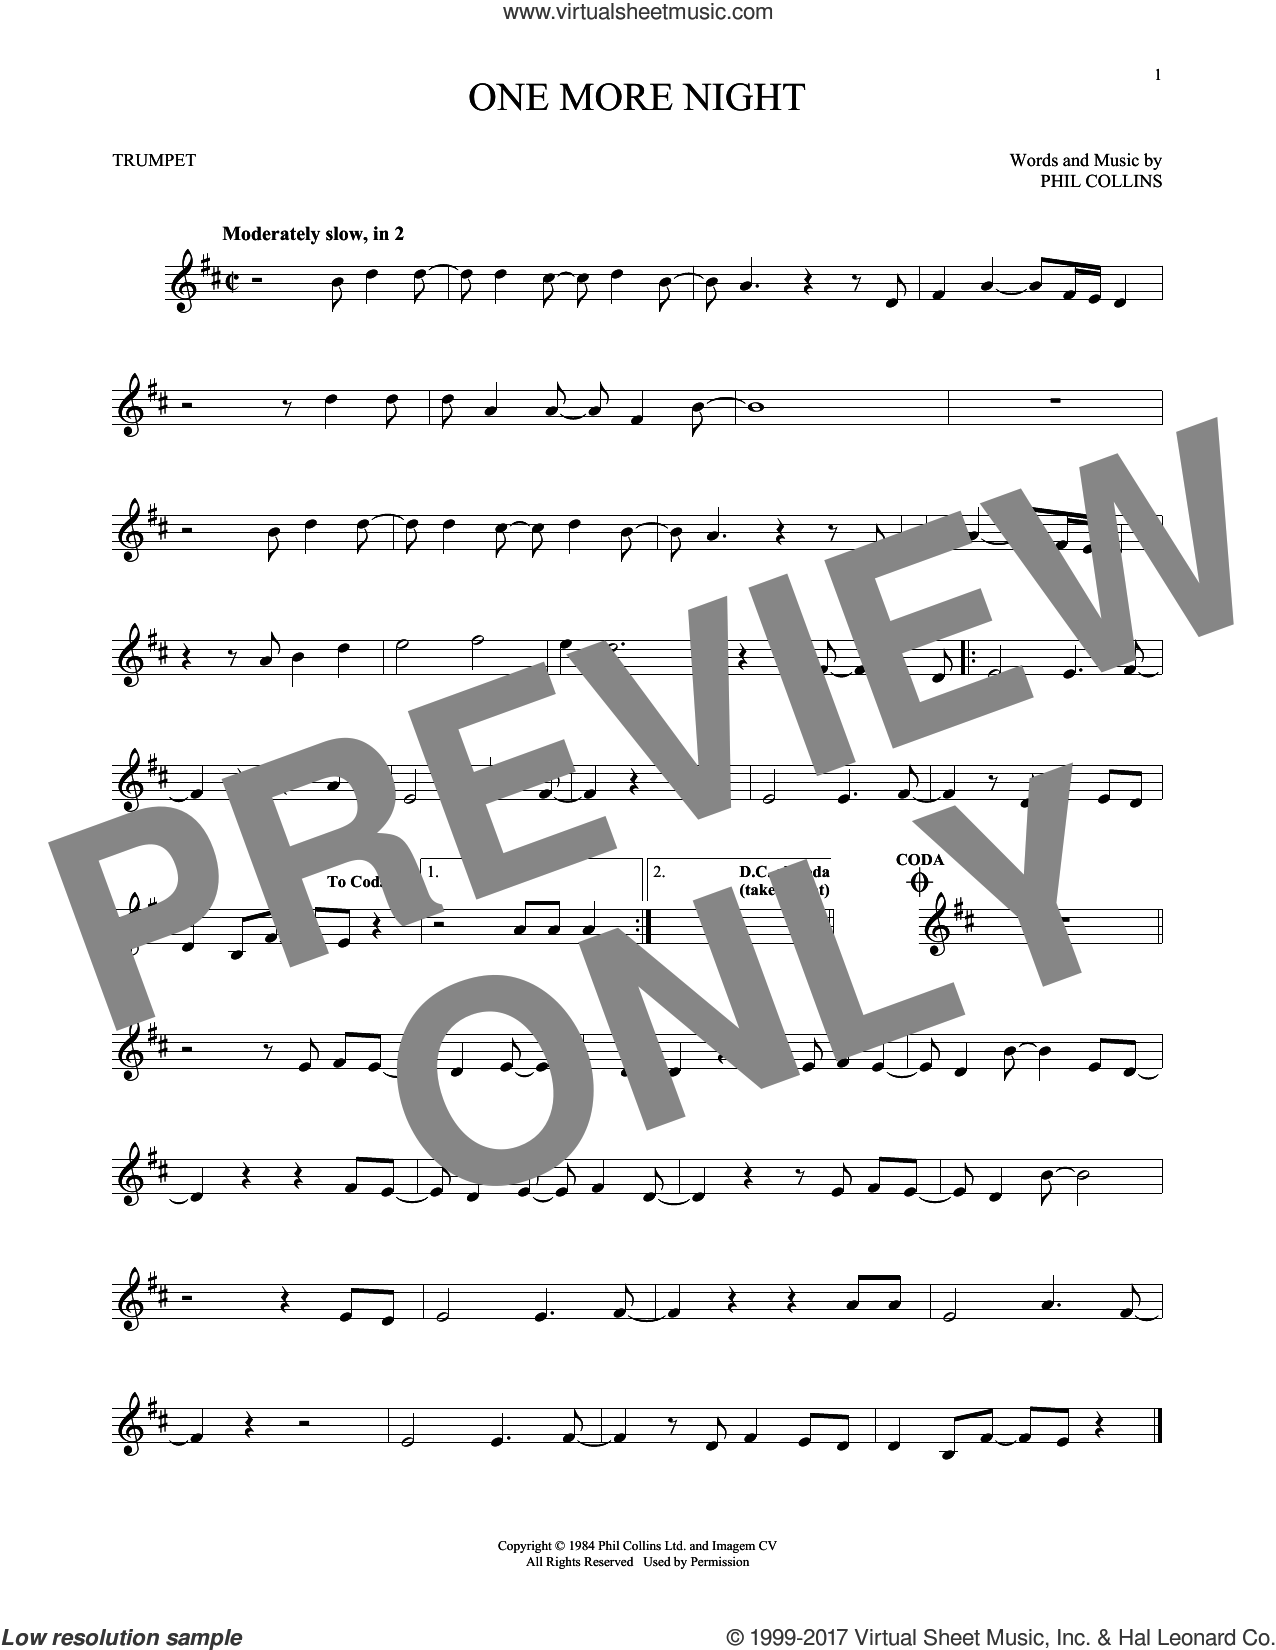 One More Night sheet music for trumpet solo by Phil Collins, intermediate